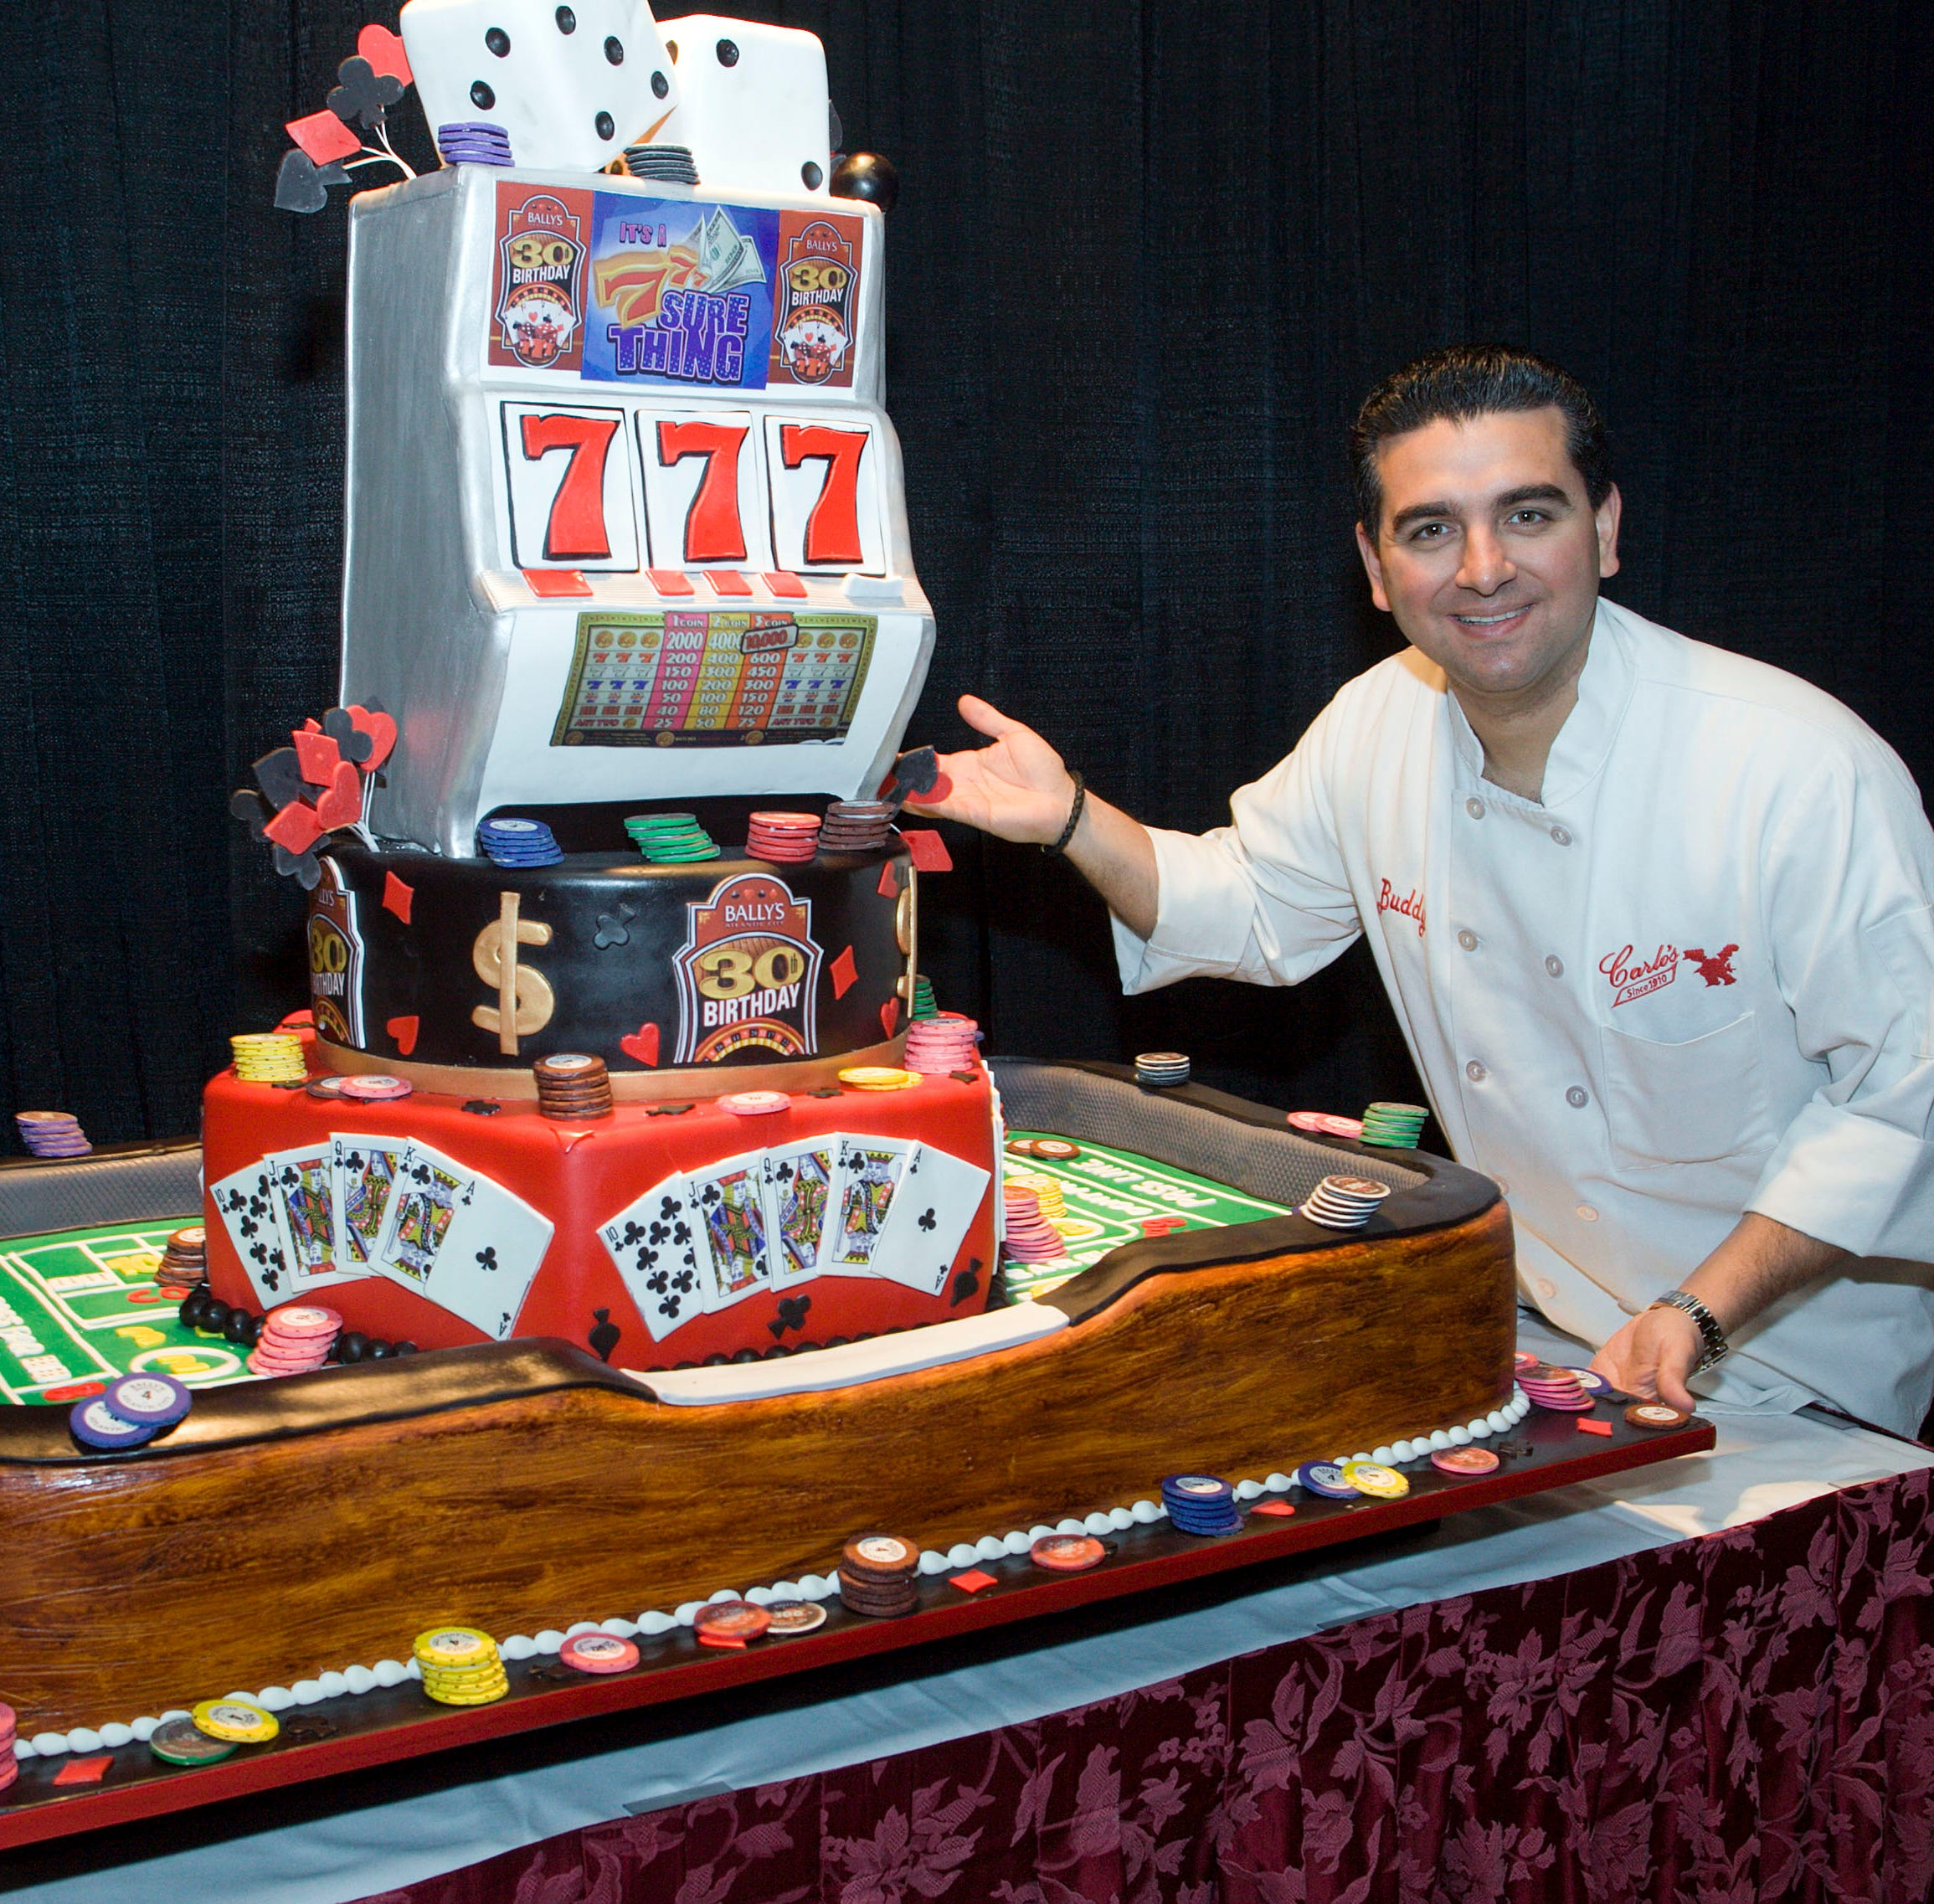 As two Carlo's Bakeries close, we look back on Buddy Valastro's most outrageous cakes